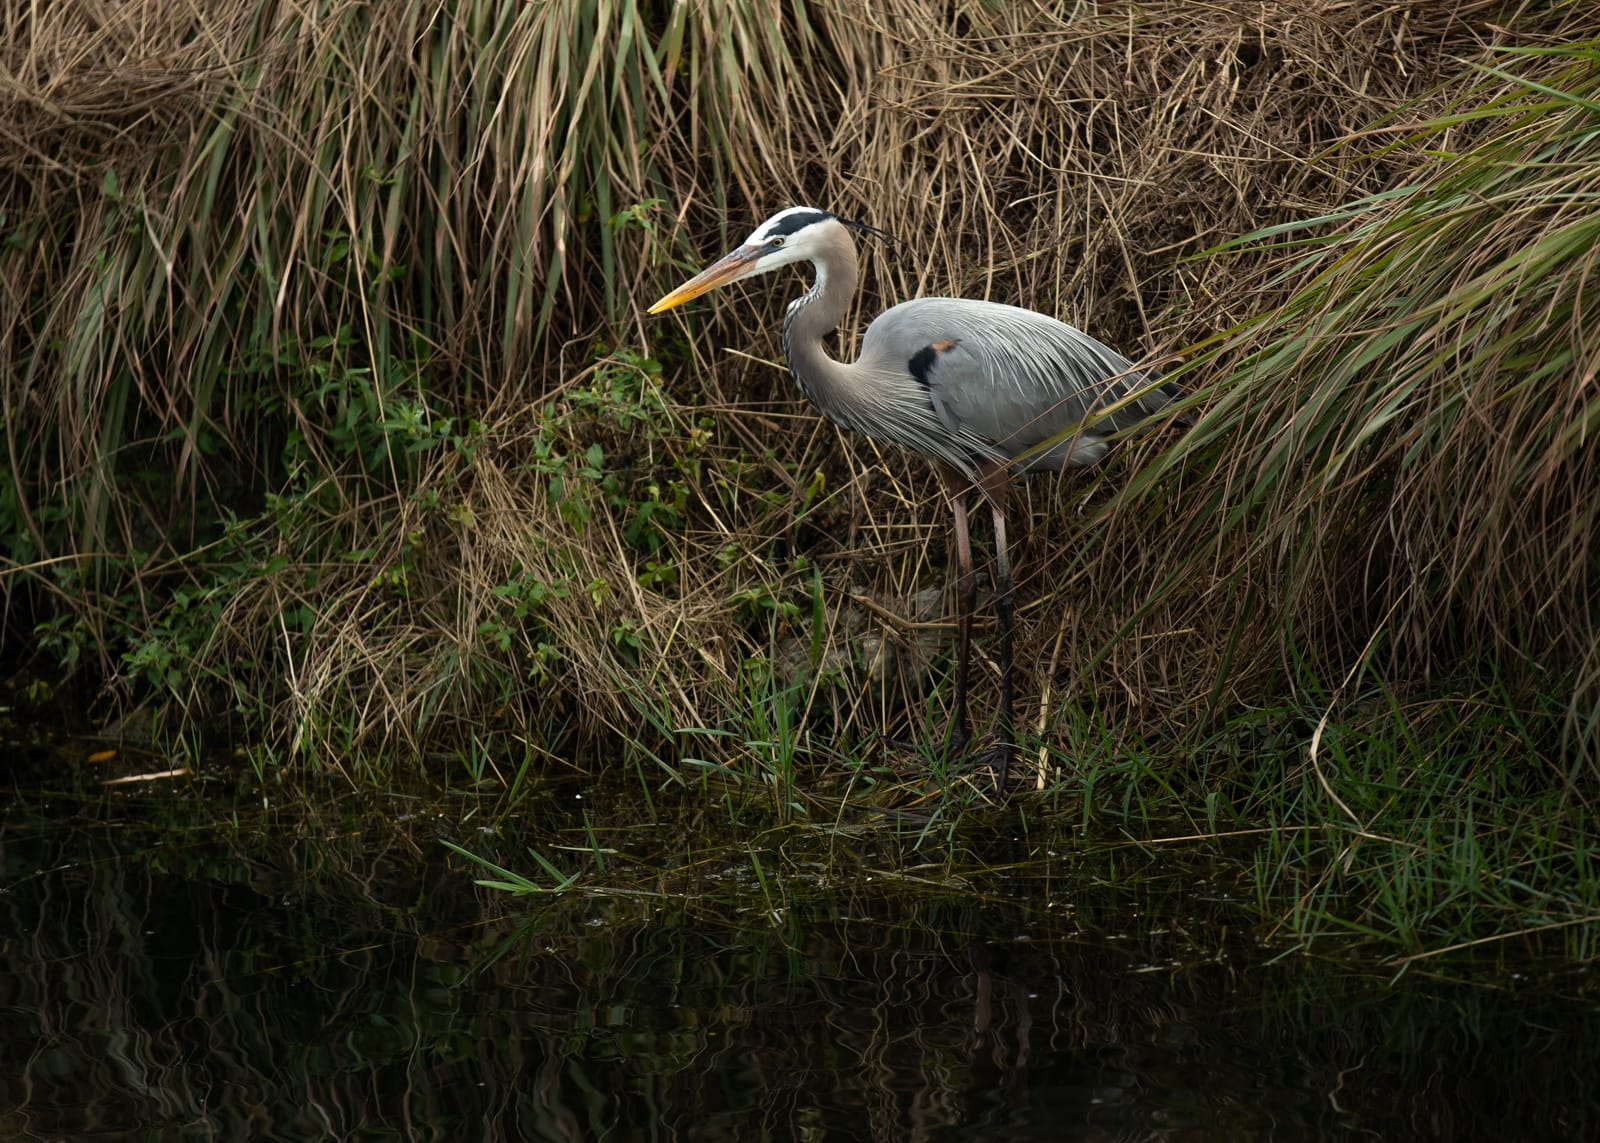 A Great blue heron on the bank of a creek in the Everglades